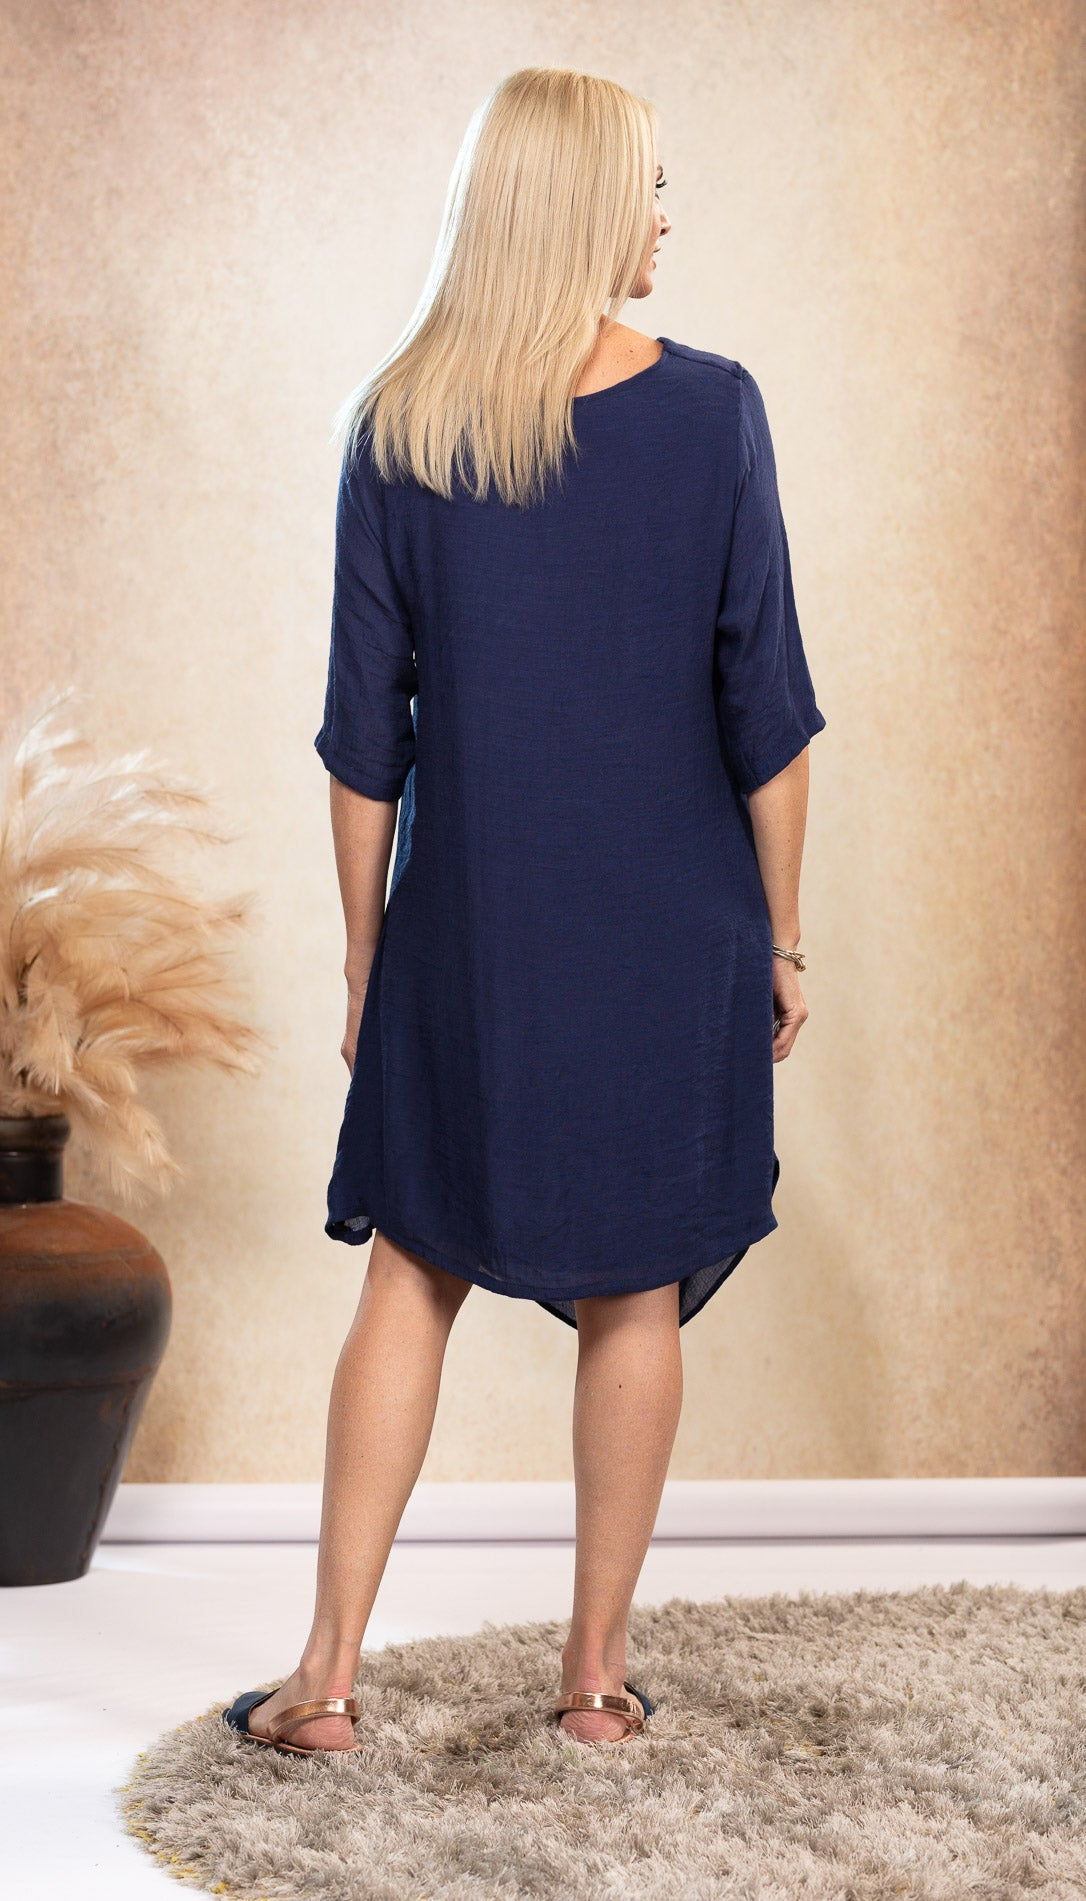 Bamboo Navy Blue Dress. Elegant bamboo design for all sizes. Australian designed and owned.